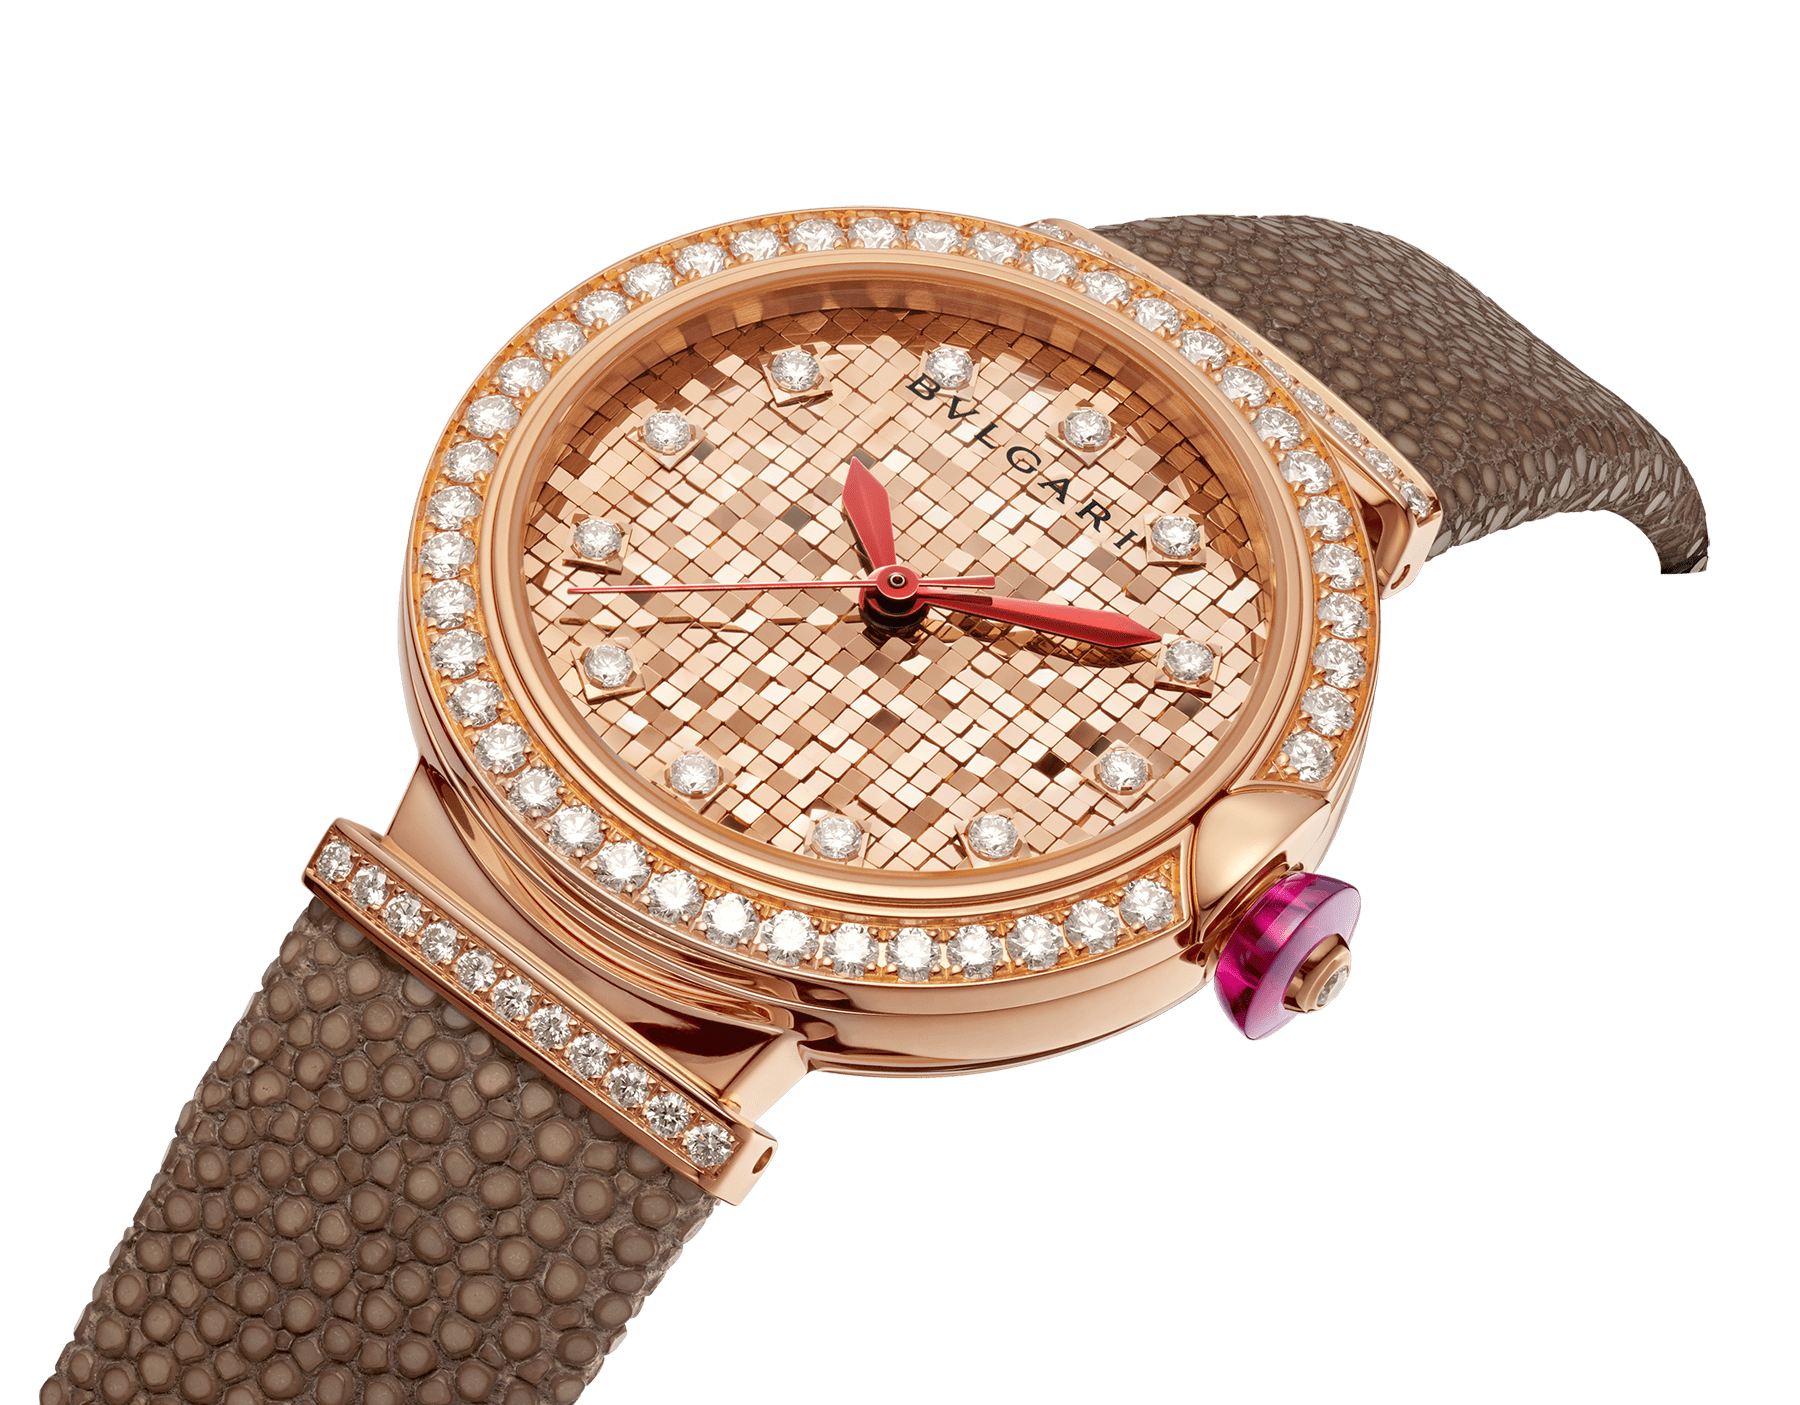 LVCEA watch with 18 kt rose gold case set with diamonds, 18 kt rose gold mosaic dial and bronze galuchat bracelet. 102799 image 2